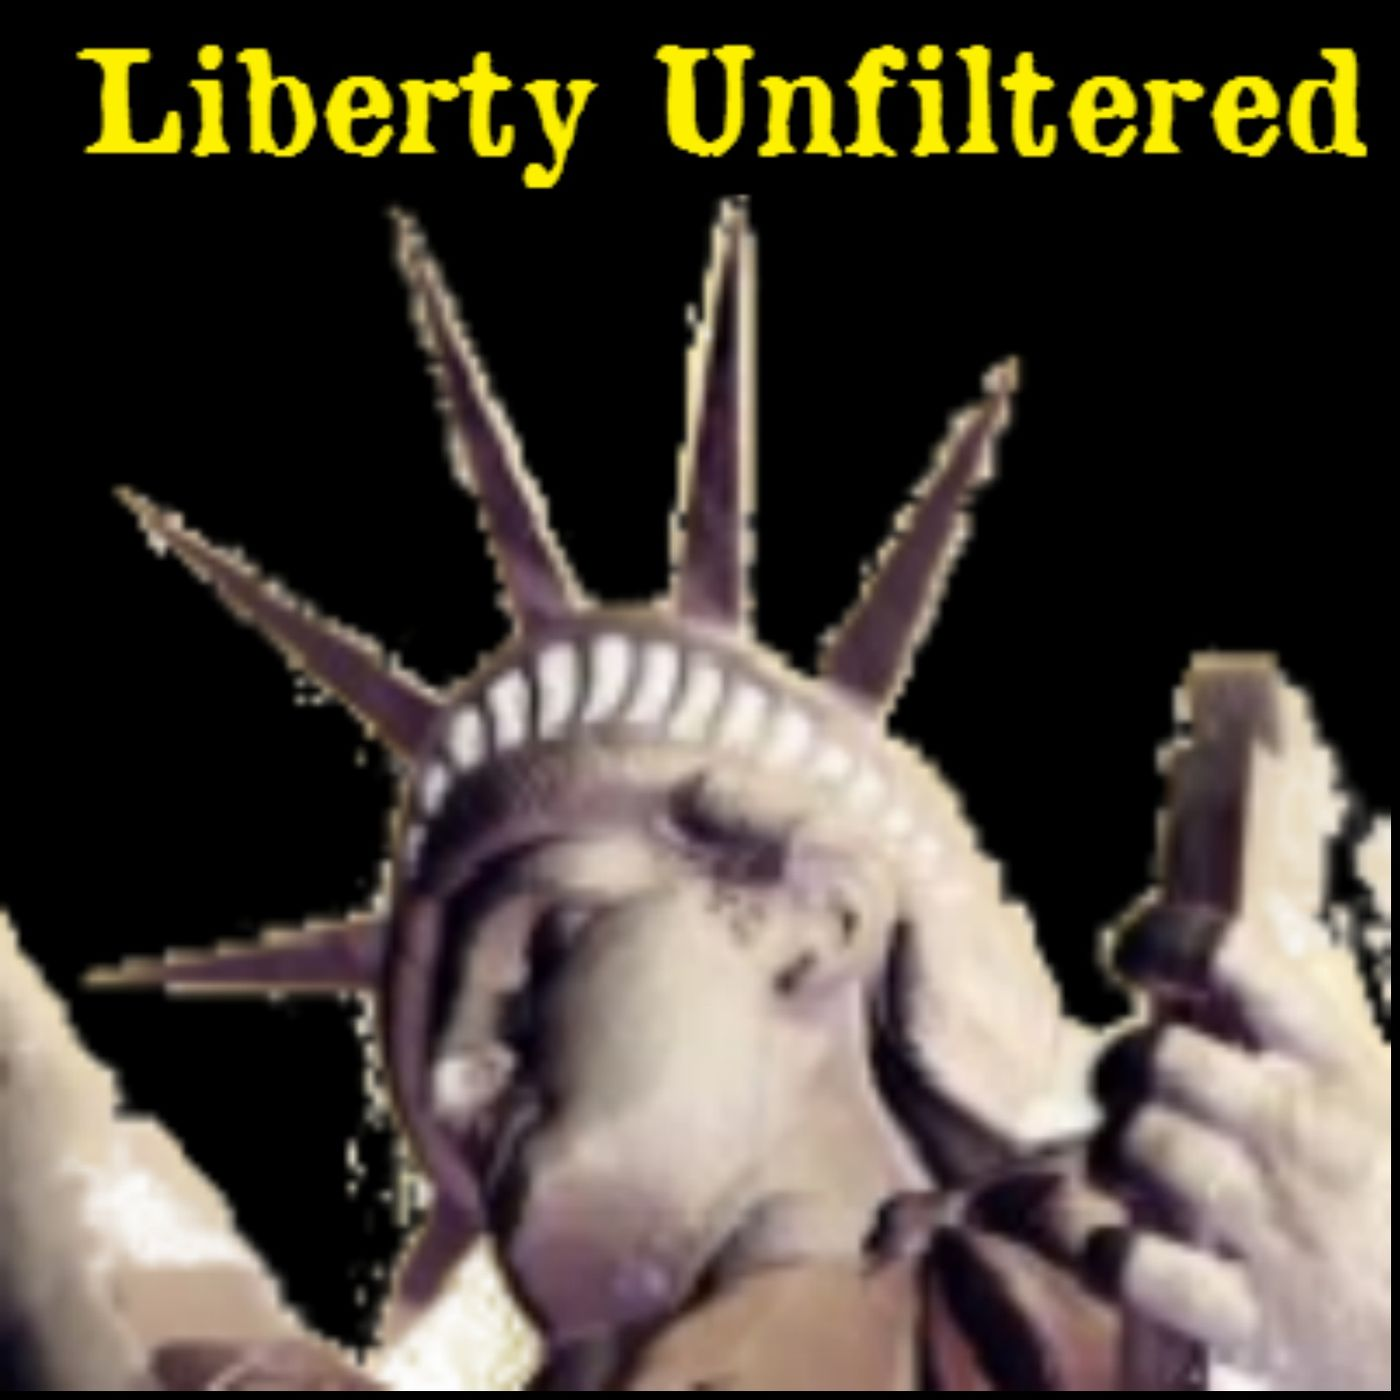 Liberty Unfiltered